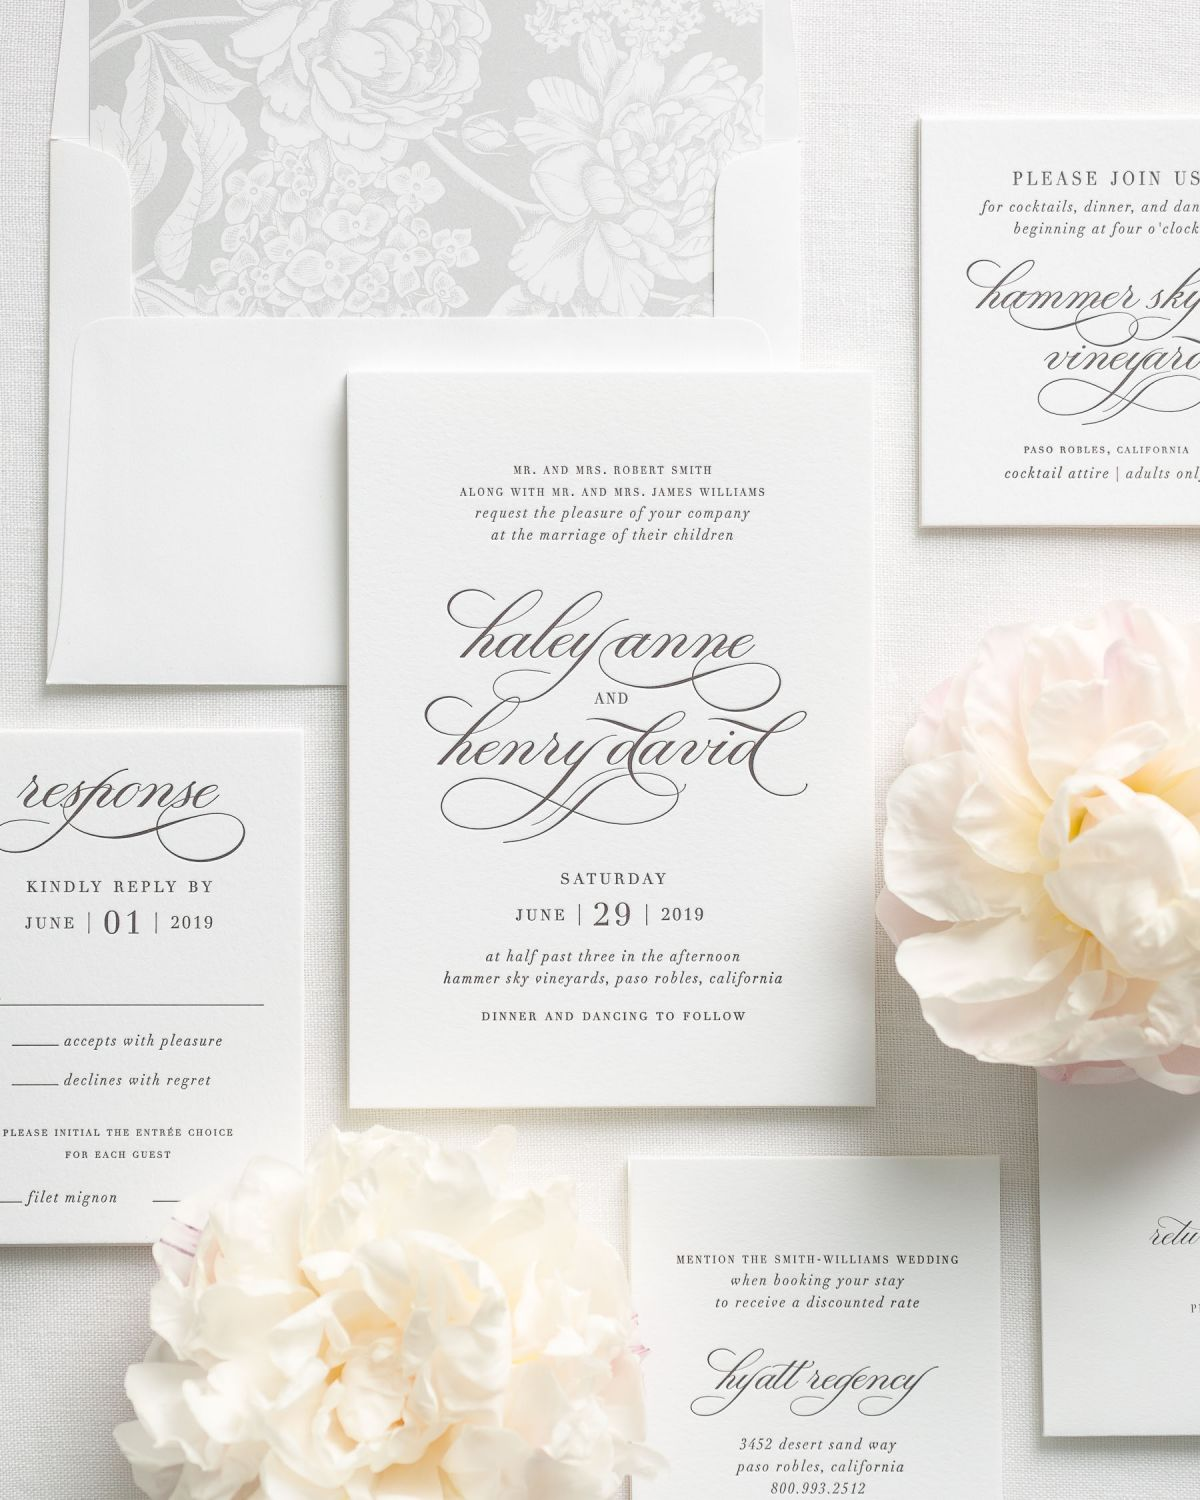 Romantic Letterpress Wedding Invitations with Matching Accessories